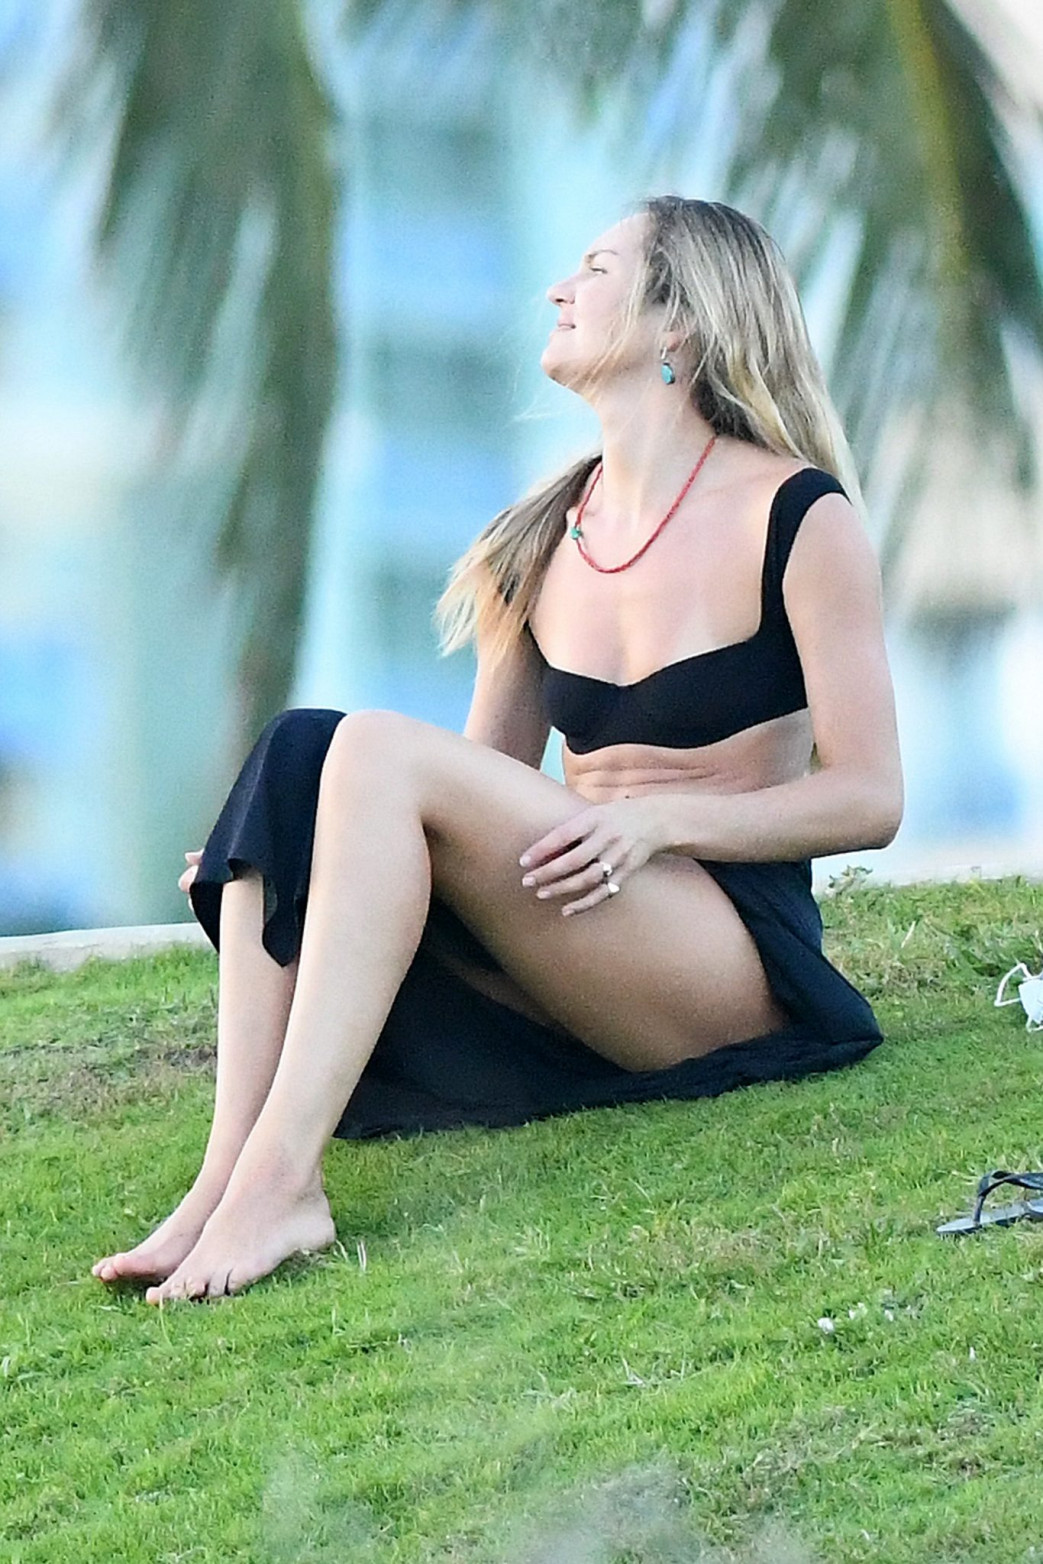 Candice Swanepoel OOPs Upskirt at a Park in Miami - Nude